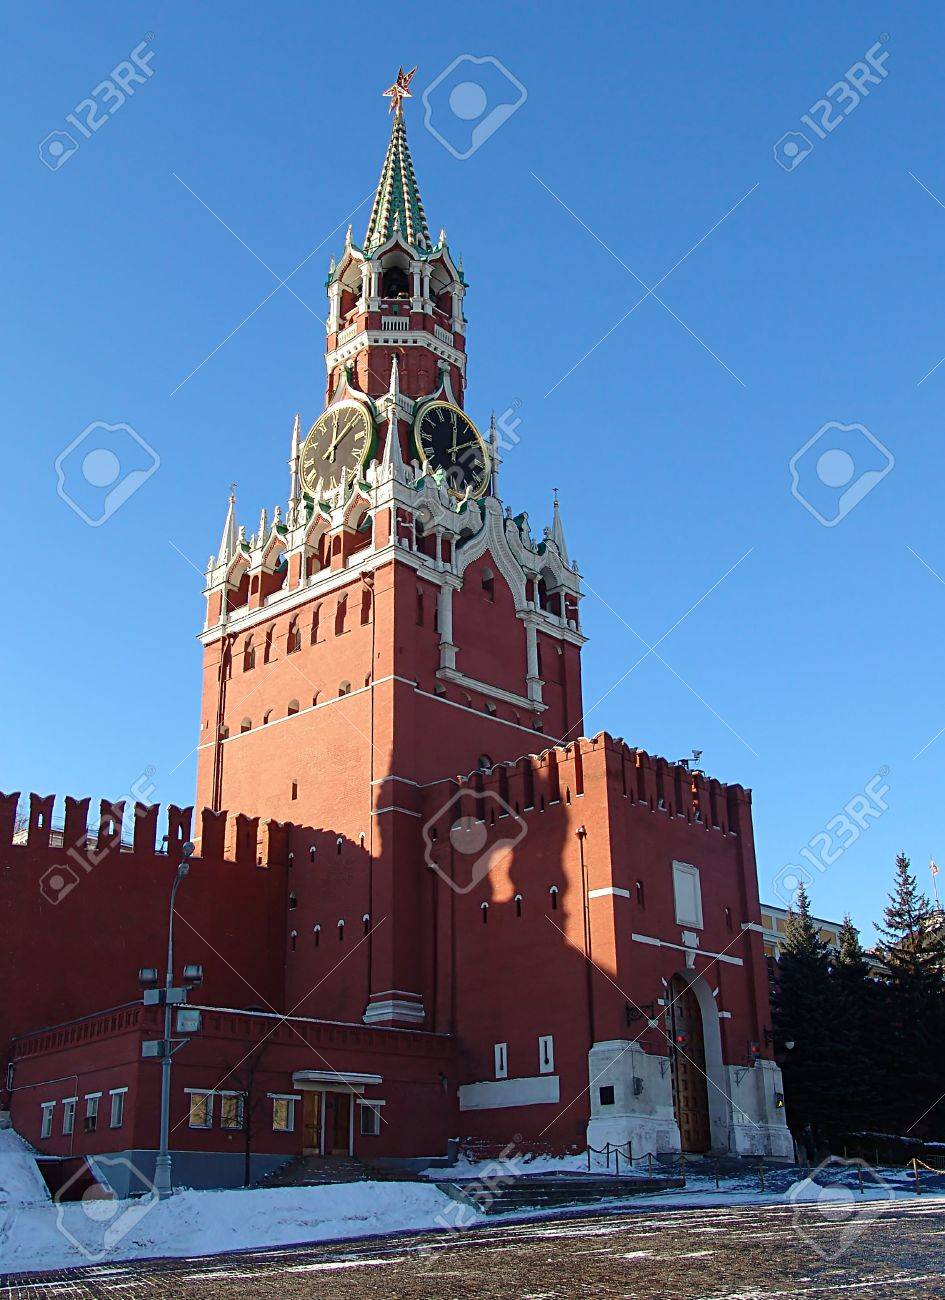 Tower of the Savior Moscow, A View Of The Spasskaya (Savior) Tower, Moscow, Russia Stock Photo ...